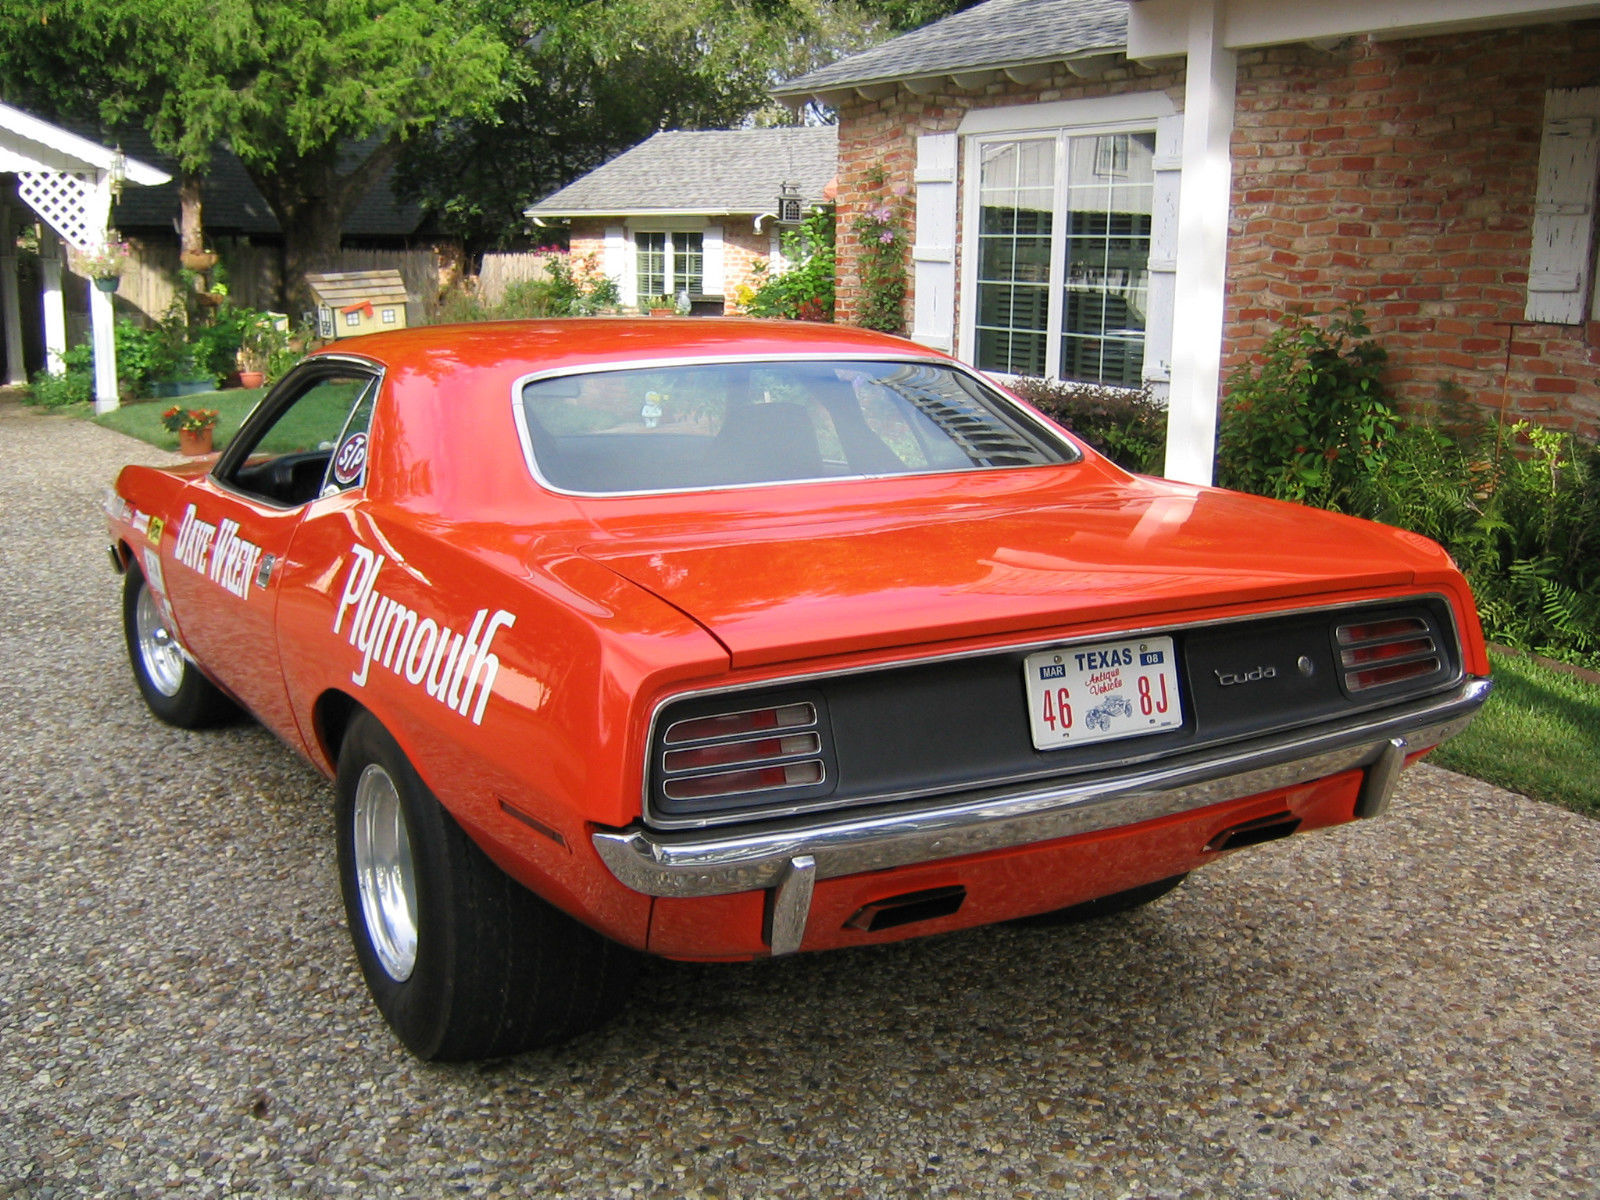 Mopars For Sale On Craigslist >> Dave Wren's Super Stock 1970 Barracuda on eBay | Mopar Blog